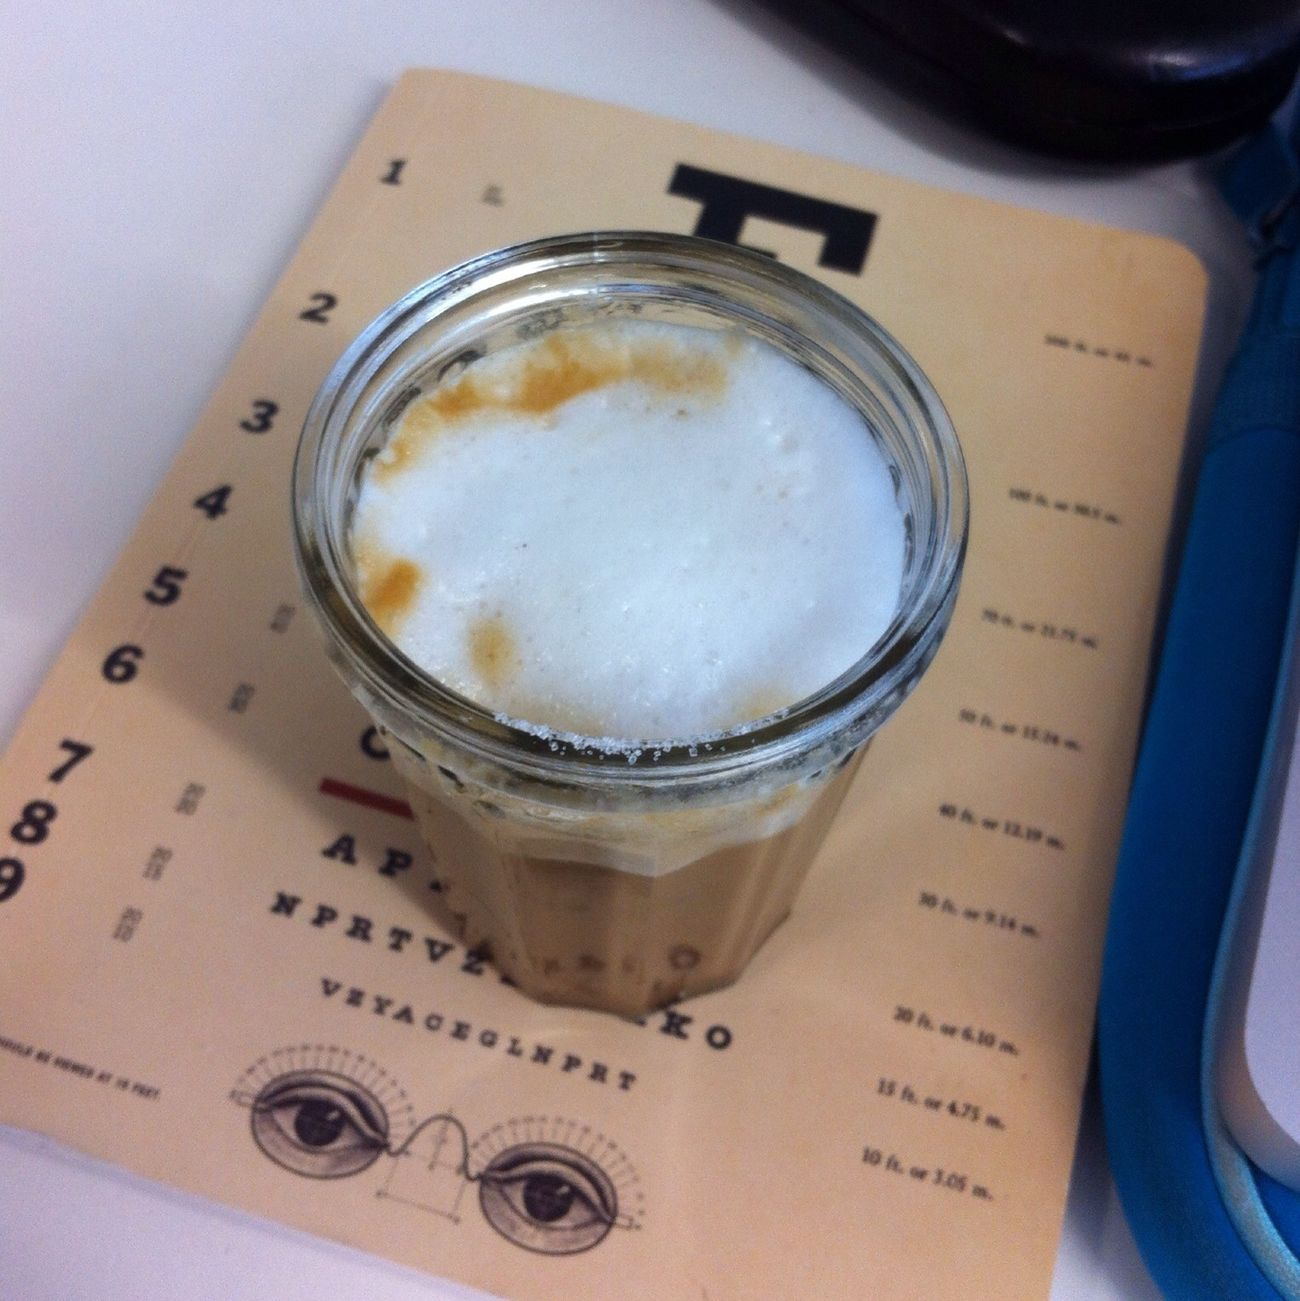 Improvements... But is not perfect yet! Looking For The Perfect Foam Coffe After Lunch